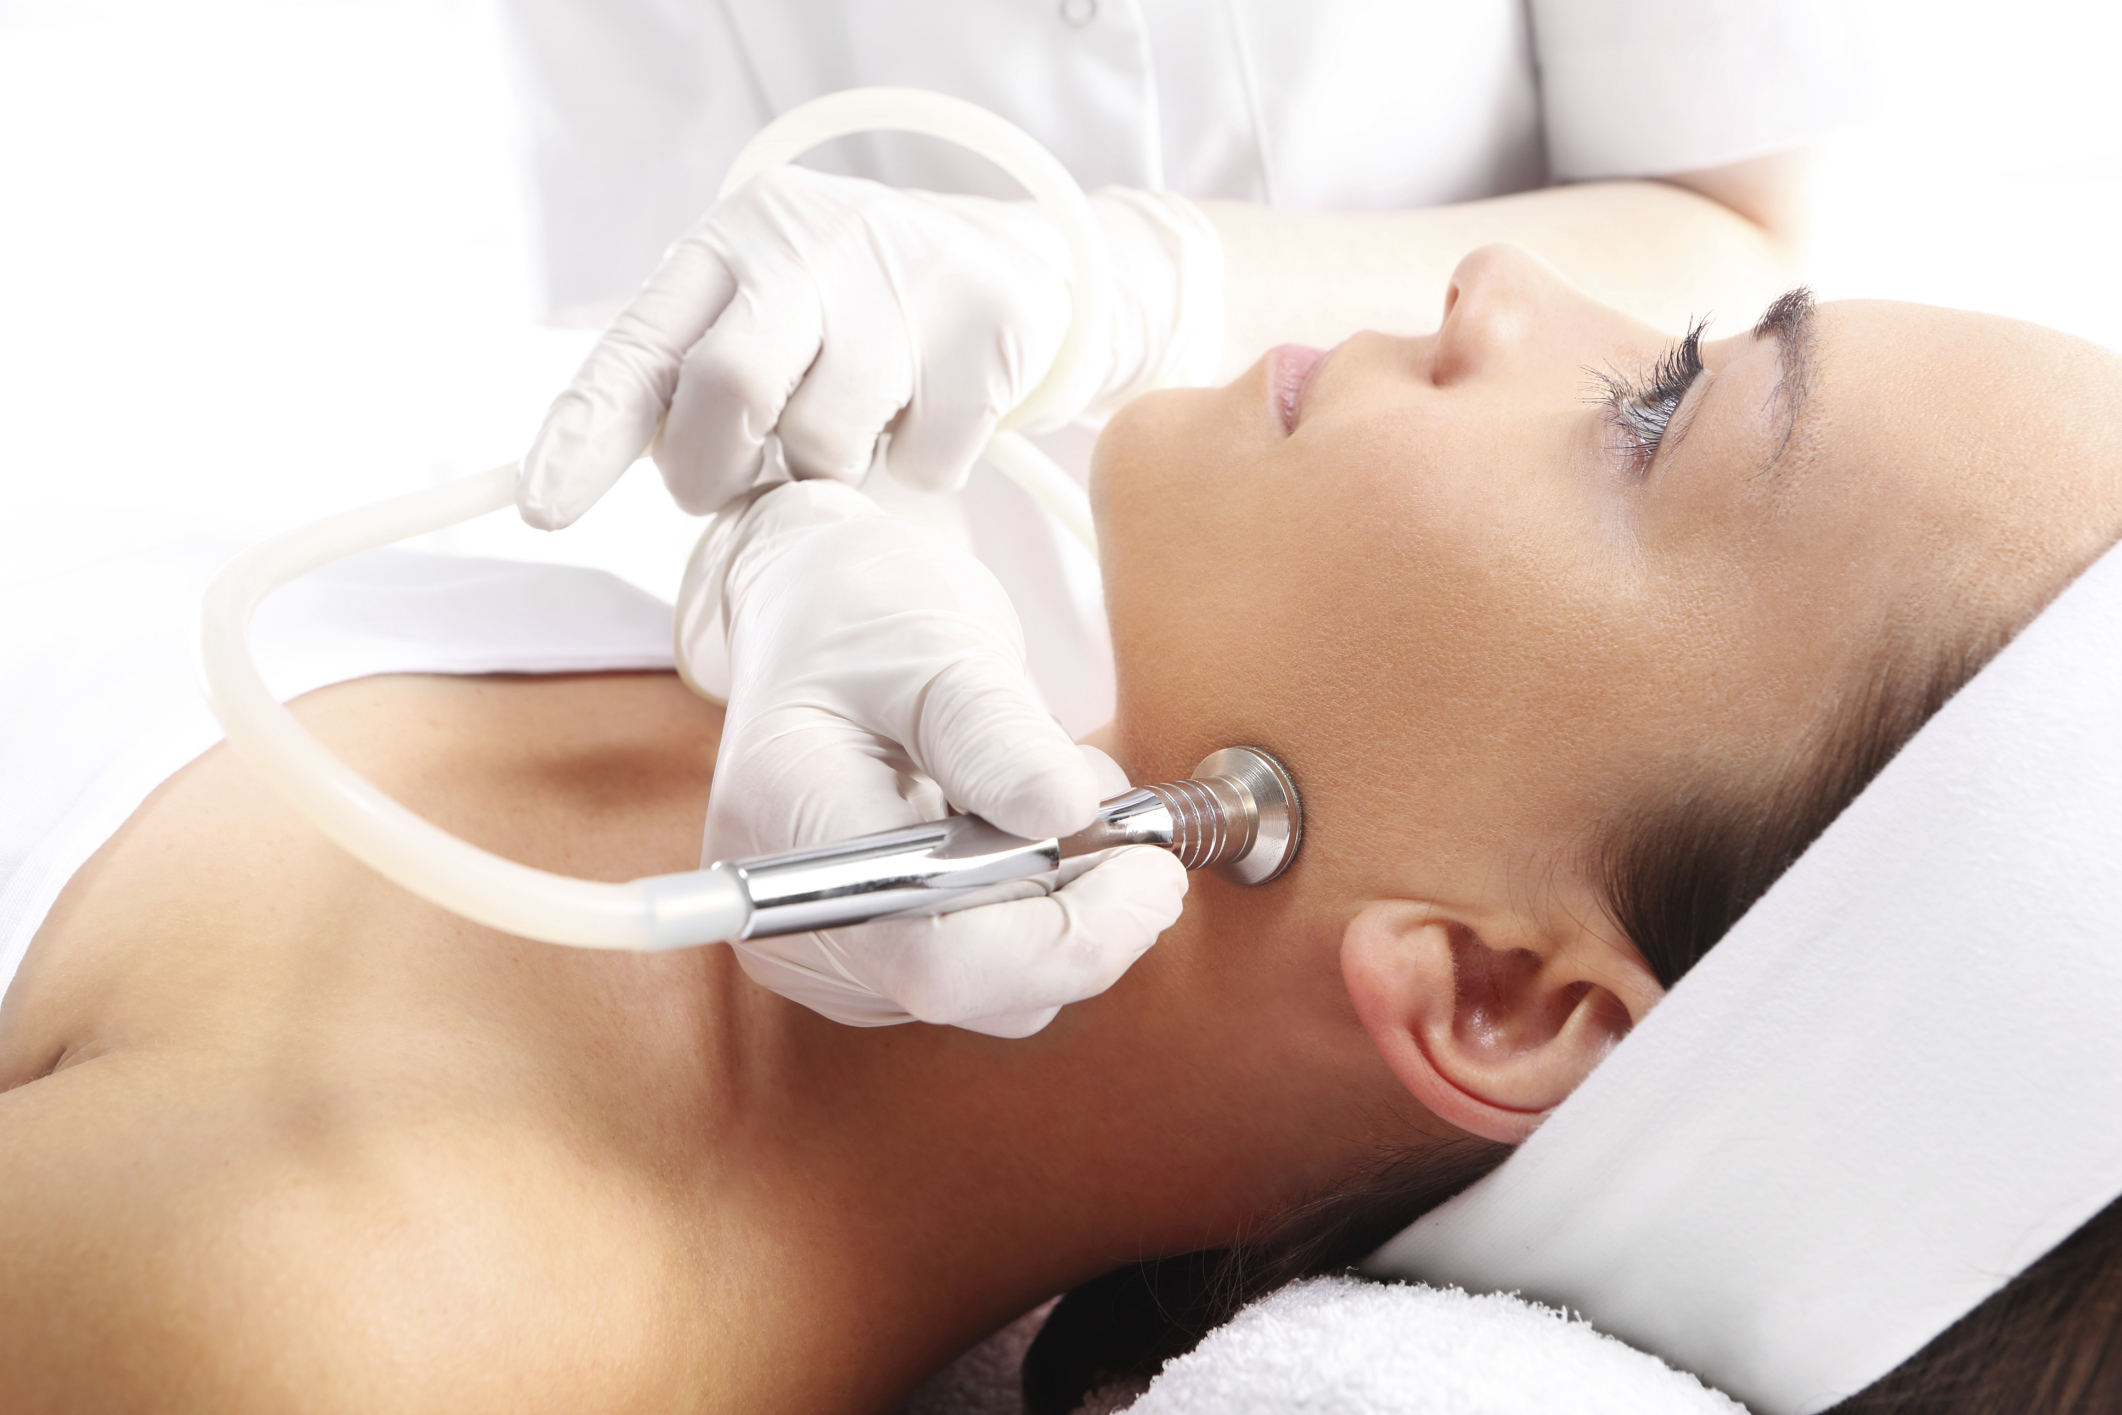 How Can I Get Rid of Scarring From Electrolysis?